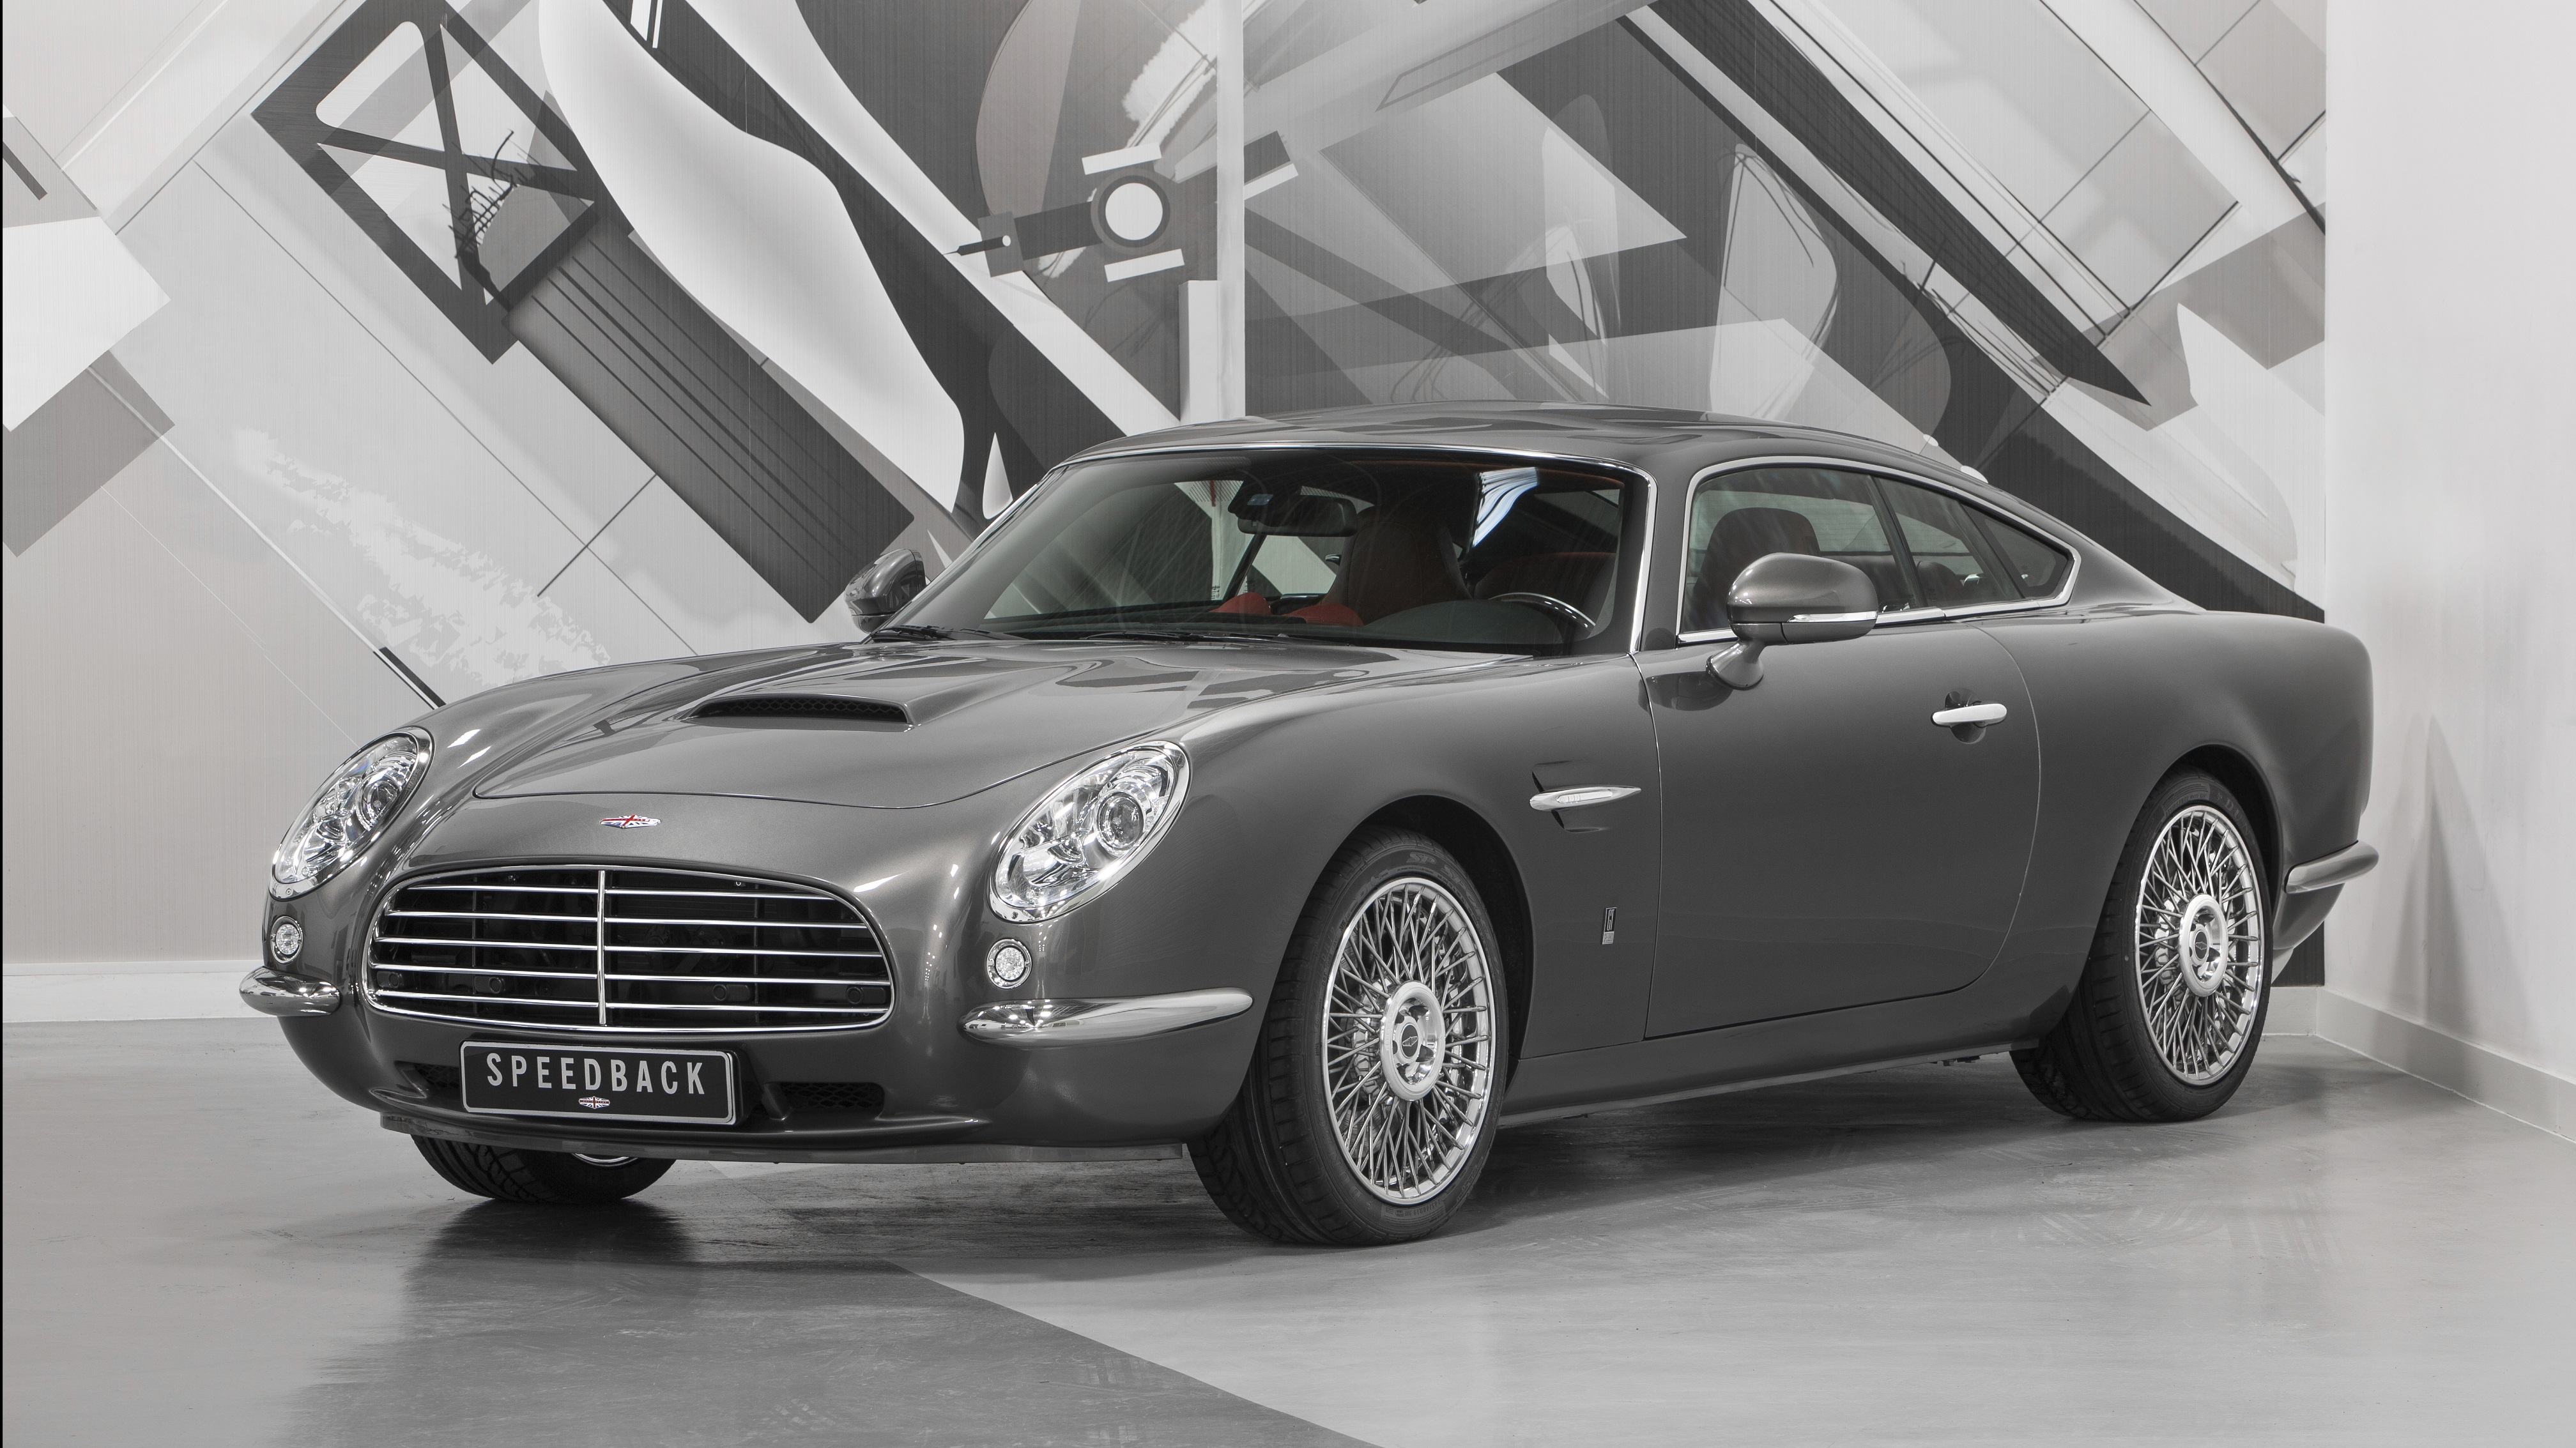 THE FIRST PRODUCTION SPEEDBACK GT HAS BEEN DELIVERED TO ...